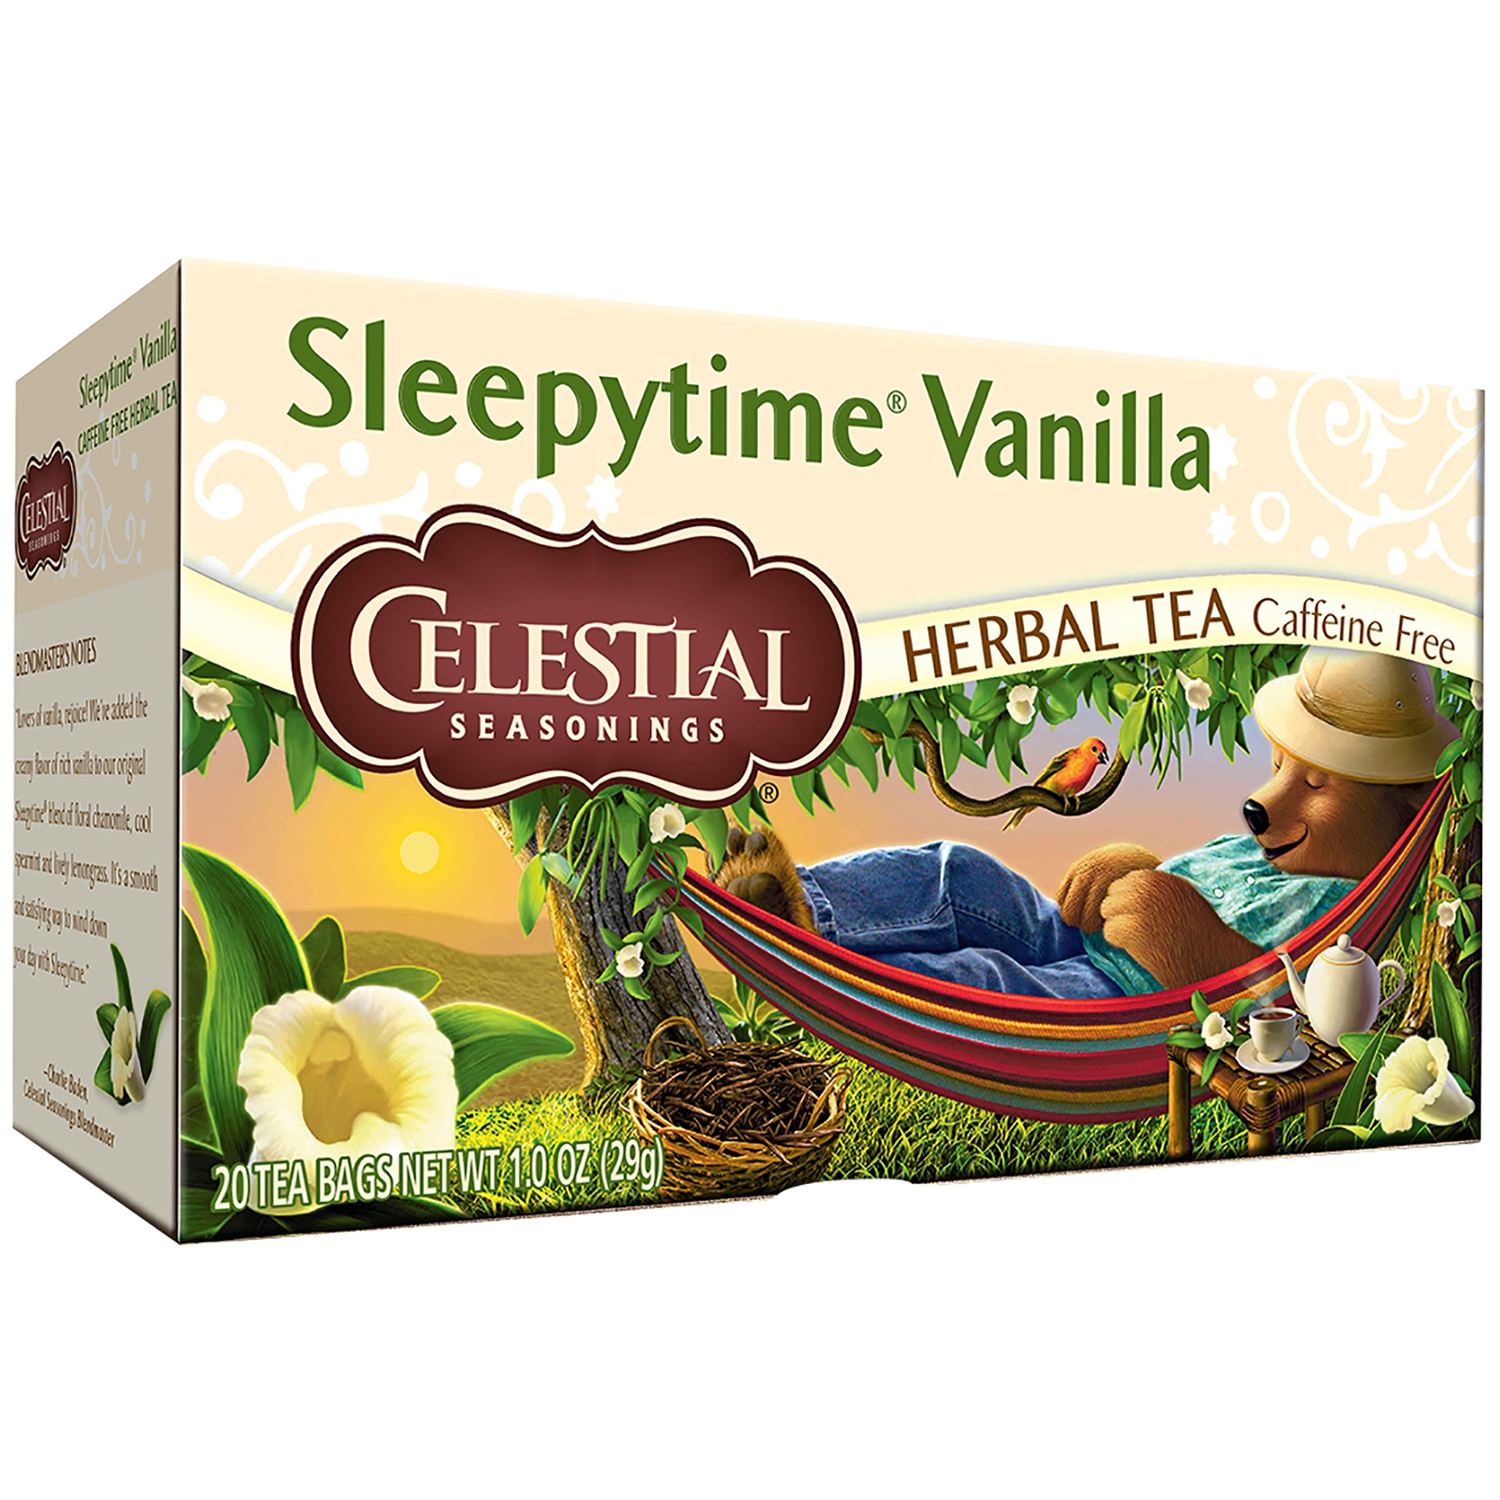 Celestial Seasonings® Sleepytime® Vanilla Herbal Tea Bags 20 ct Box